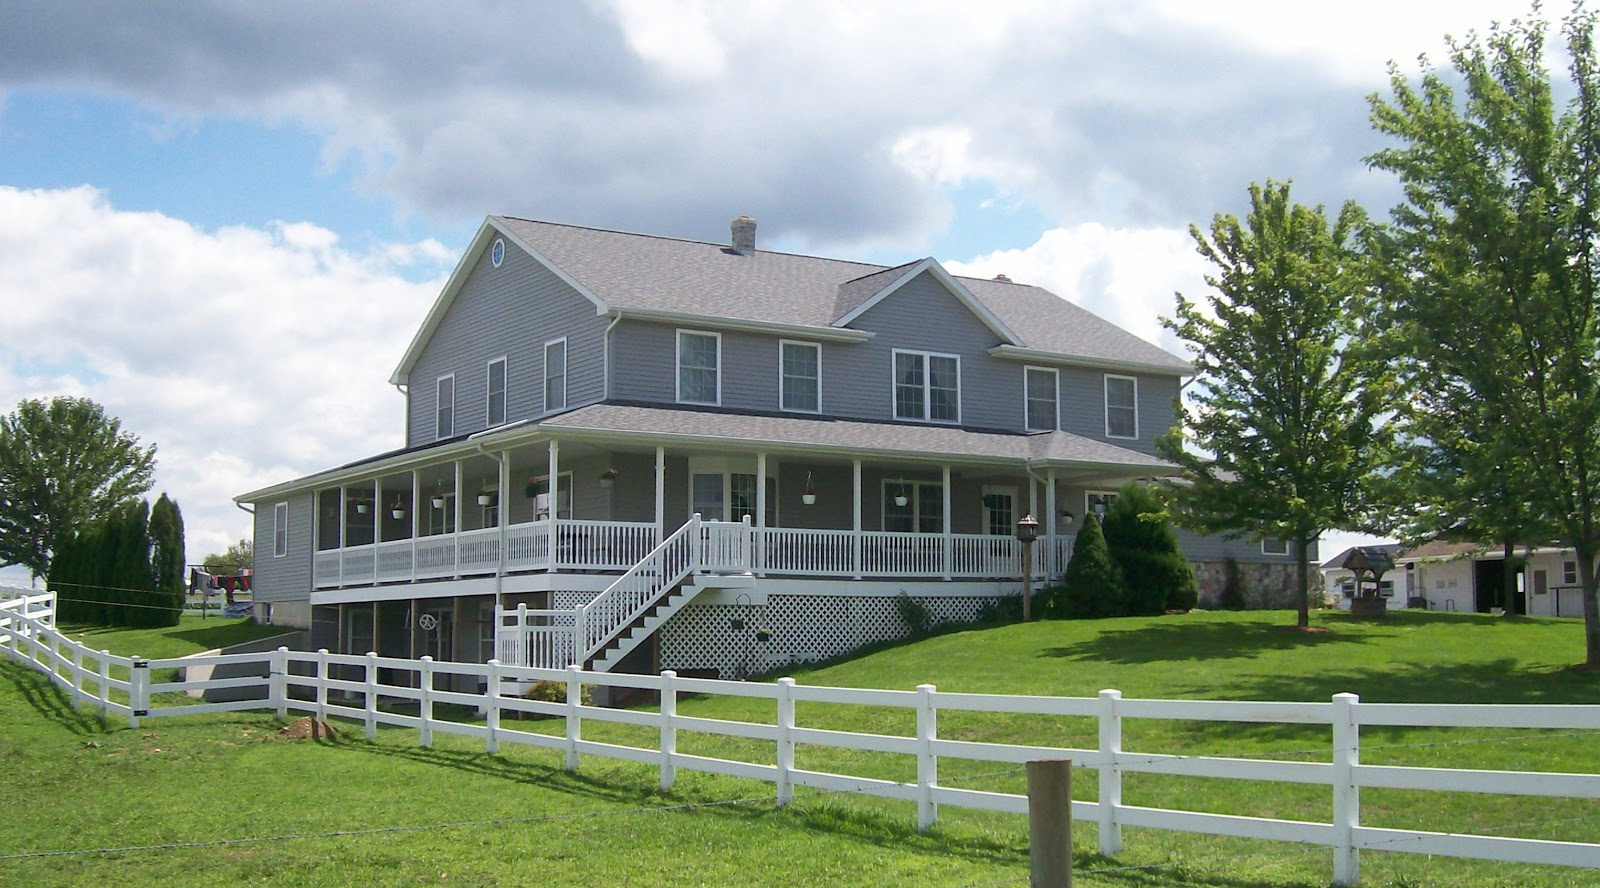 Simple pleasures amish homes plain and simple for Amish house builders